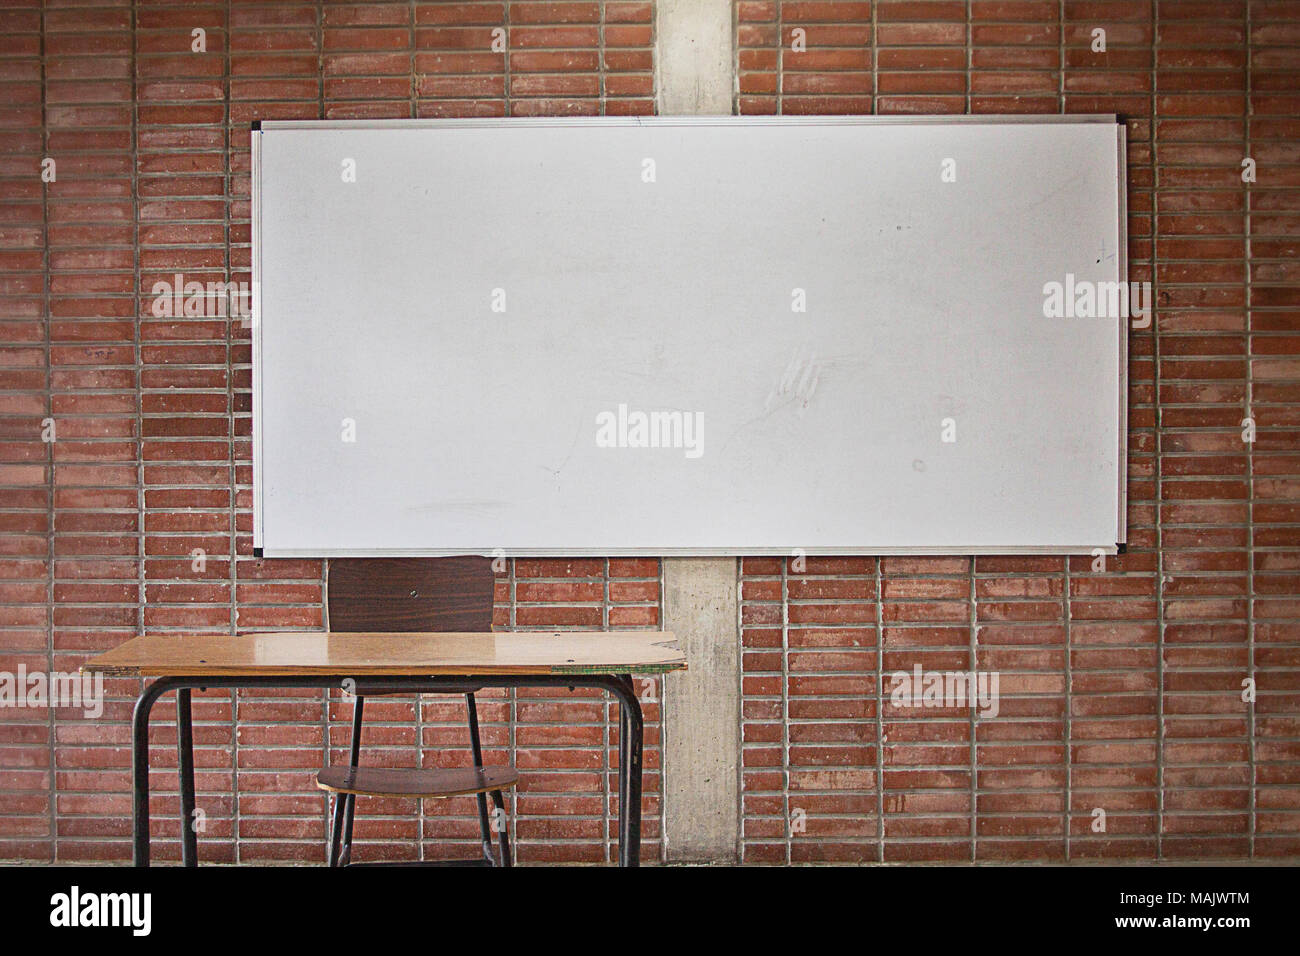 Empty Teacher S Desk With Whiteboard In The Background No Teacher No Students Classroom Without Teacher Classroom Without Students University Classroom Adults Education Stock Photo Alamy